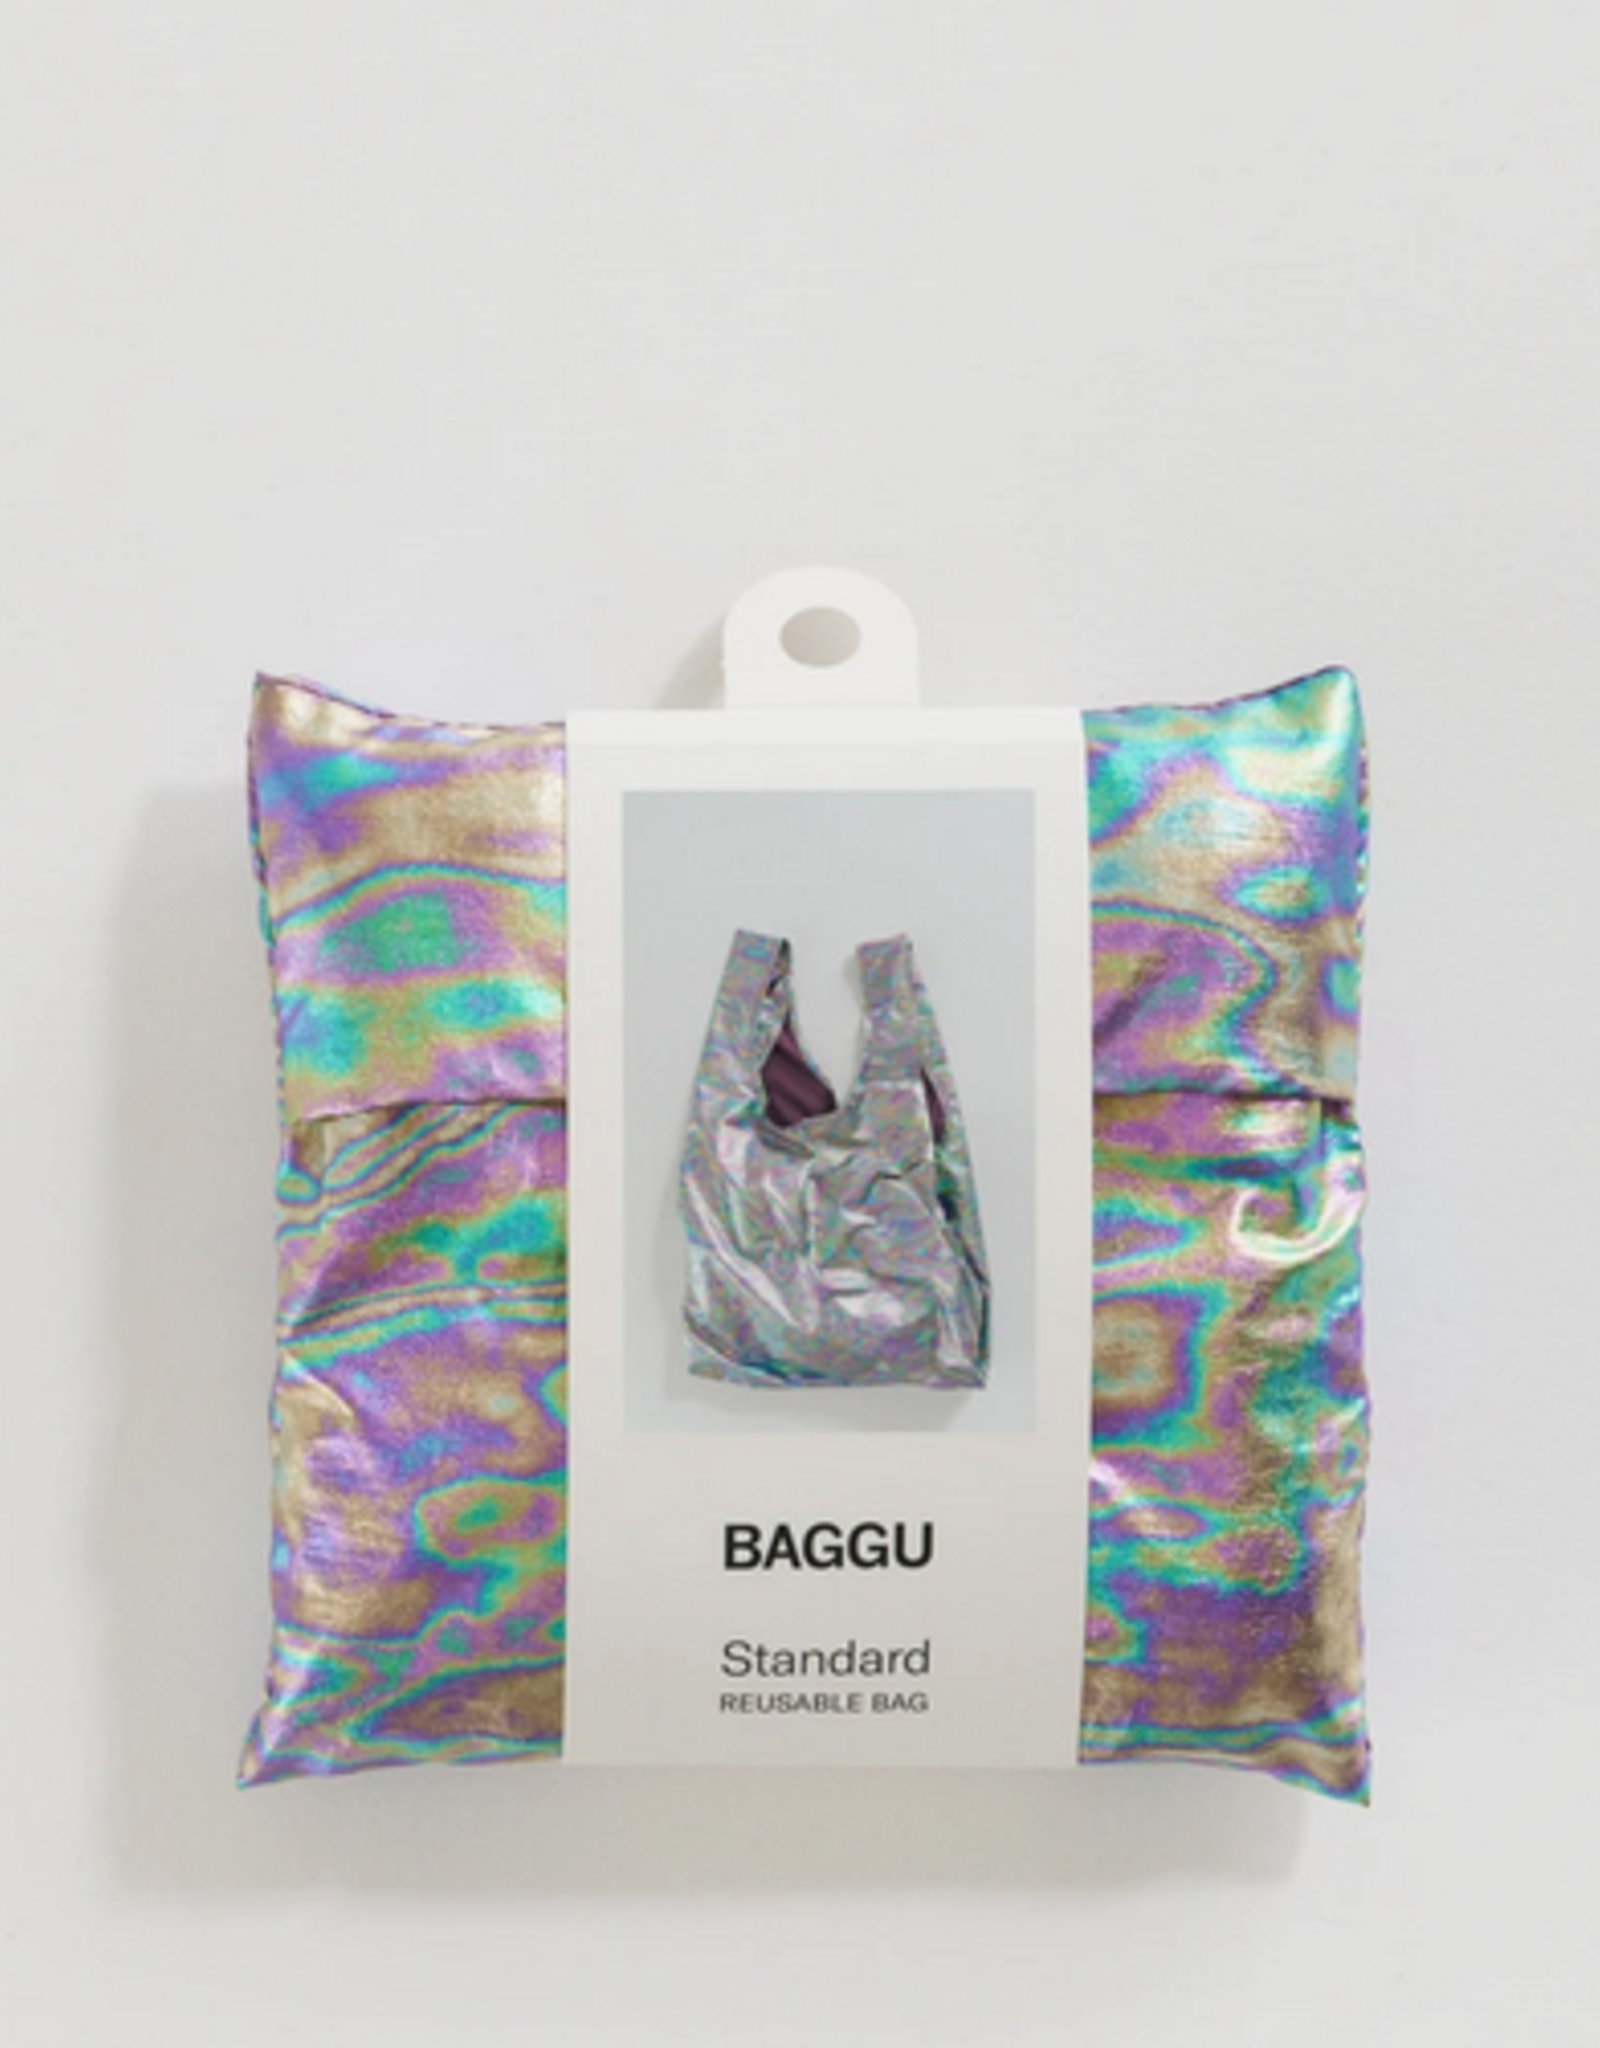 Baggu Reusable bag rainbow metallic standard